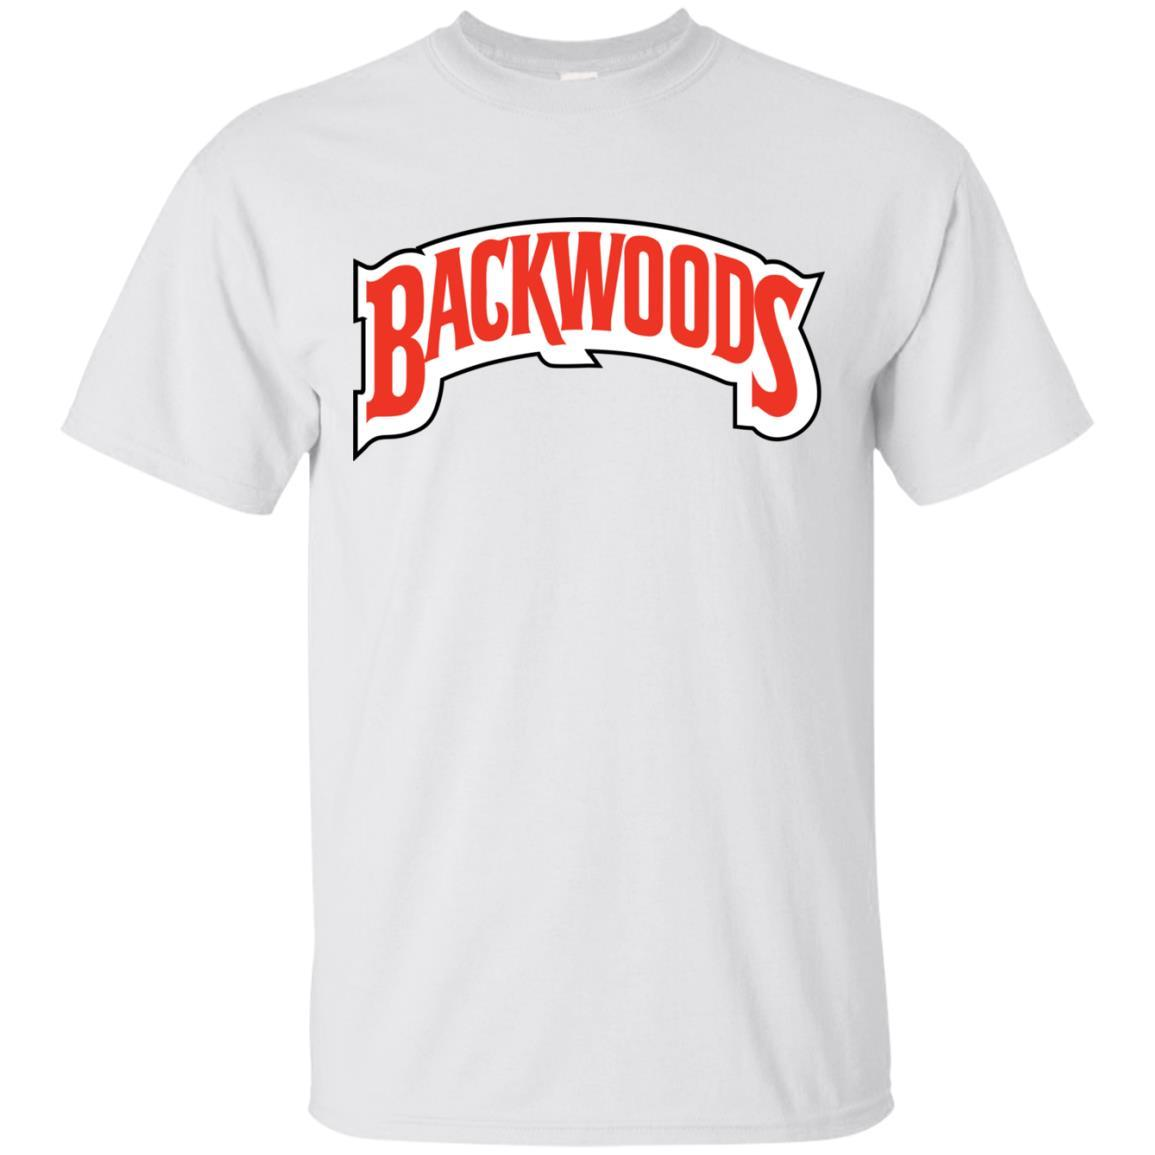 Backwoods Shirt Style / Color / Size